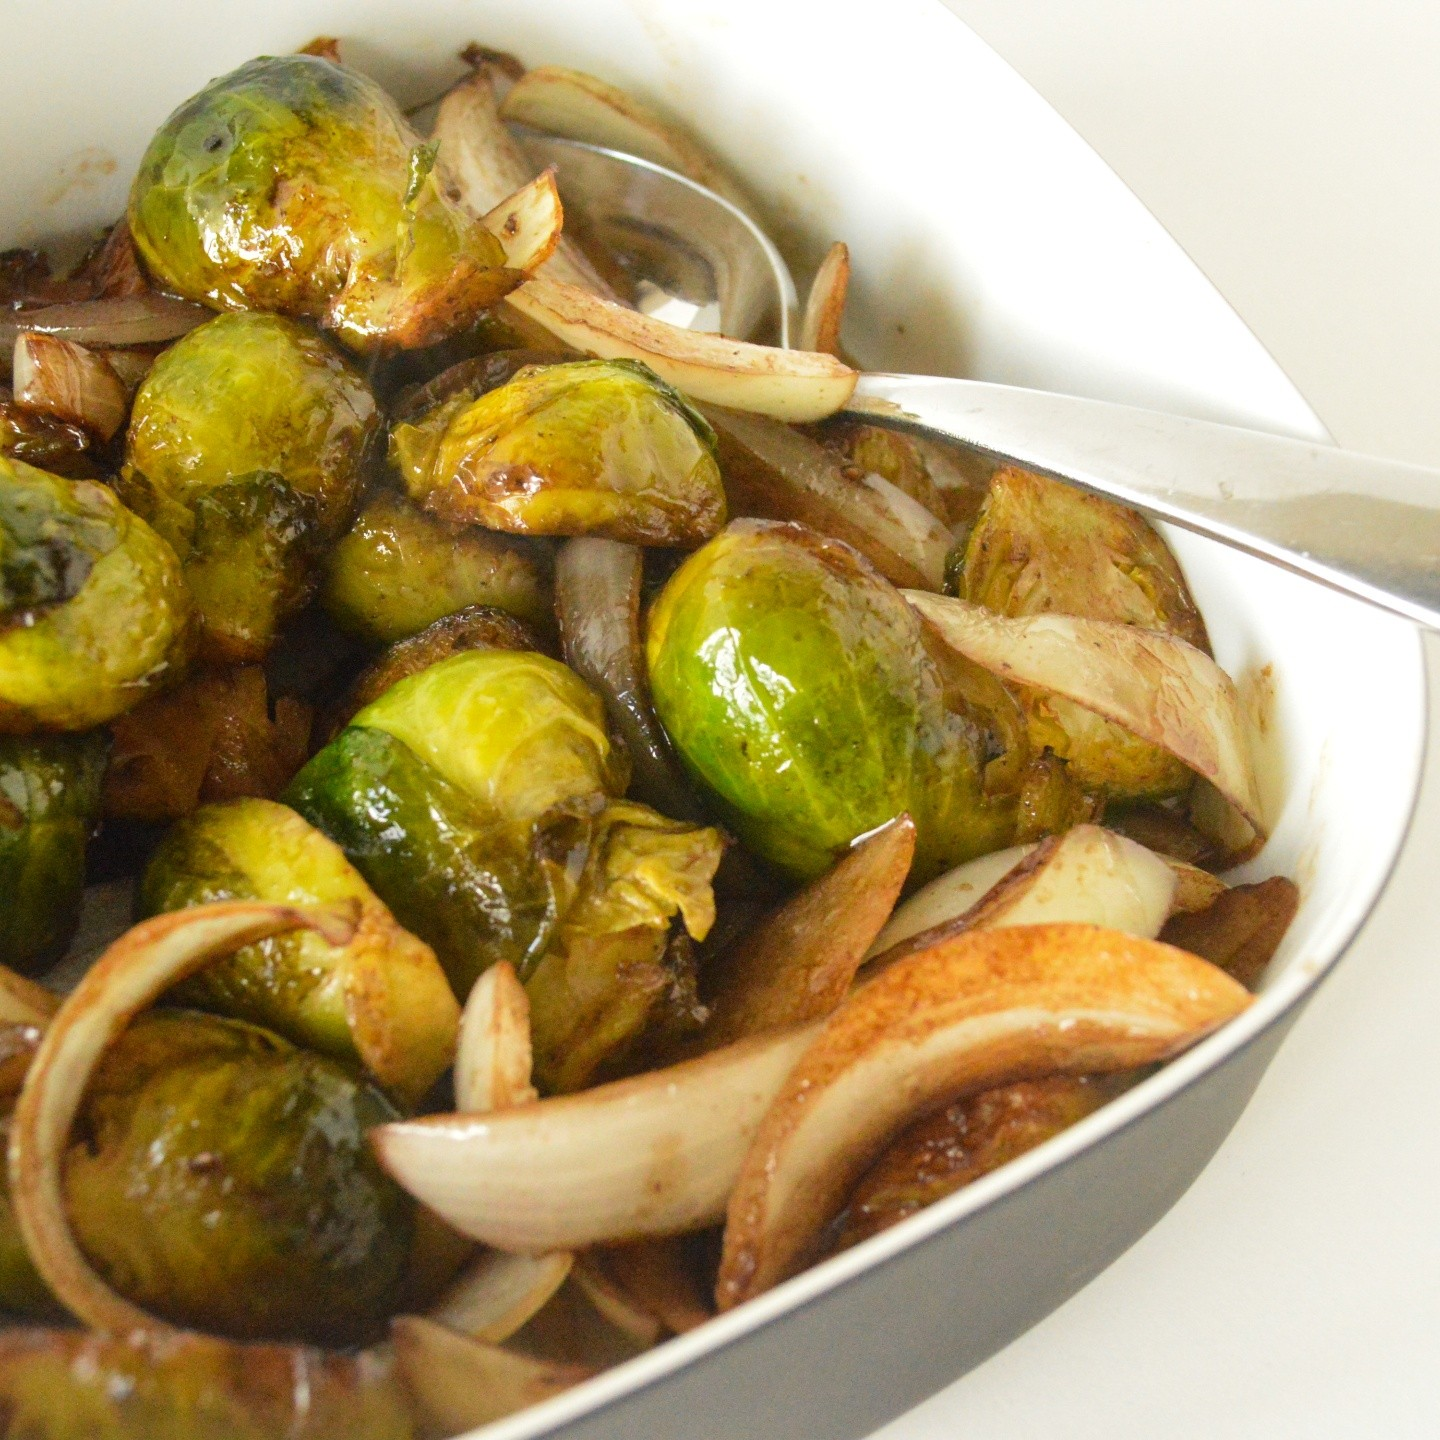 balsamic-glazed-brussels-sprouts